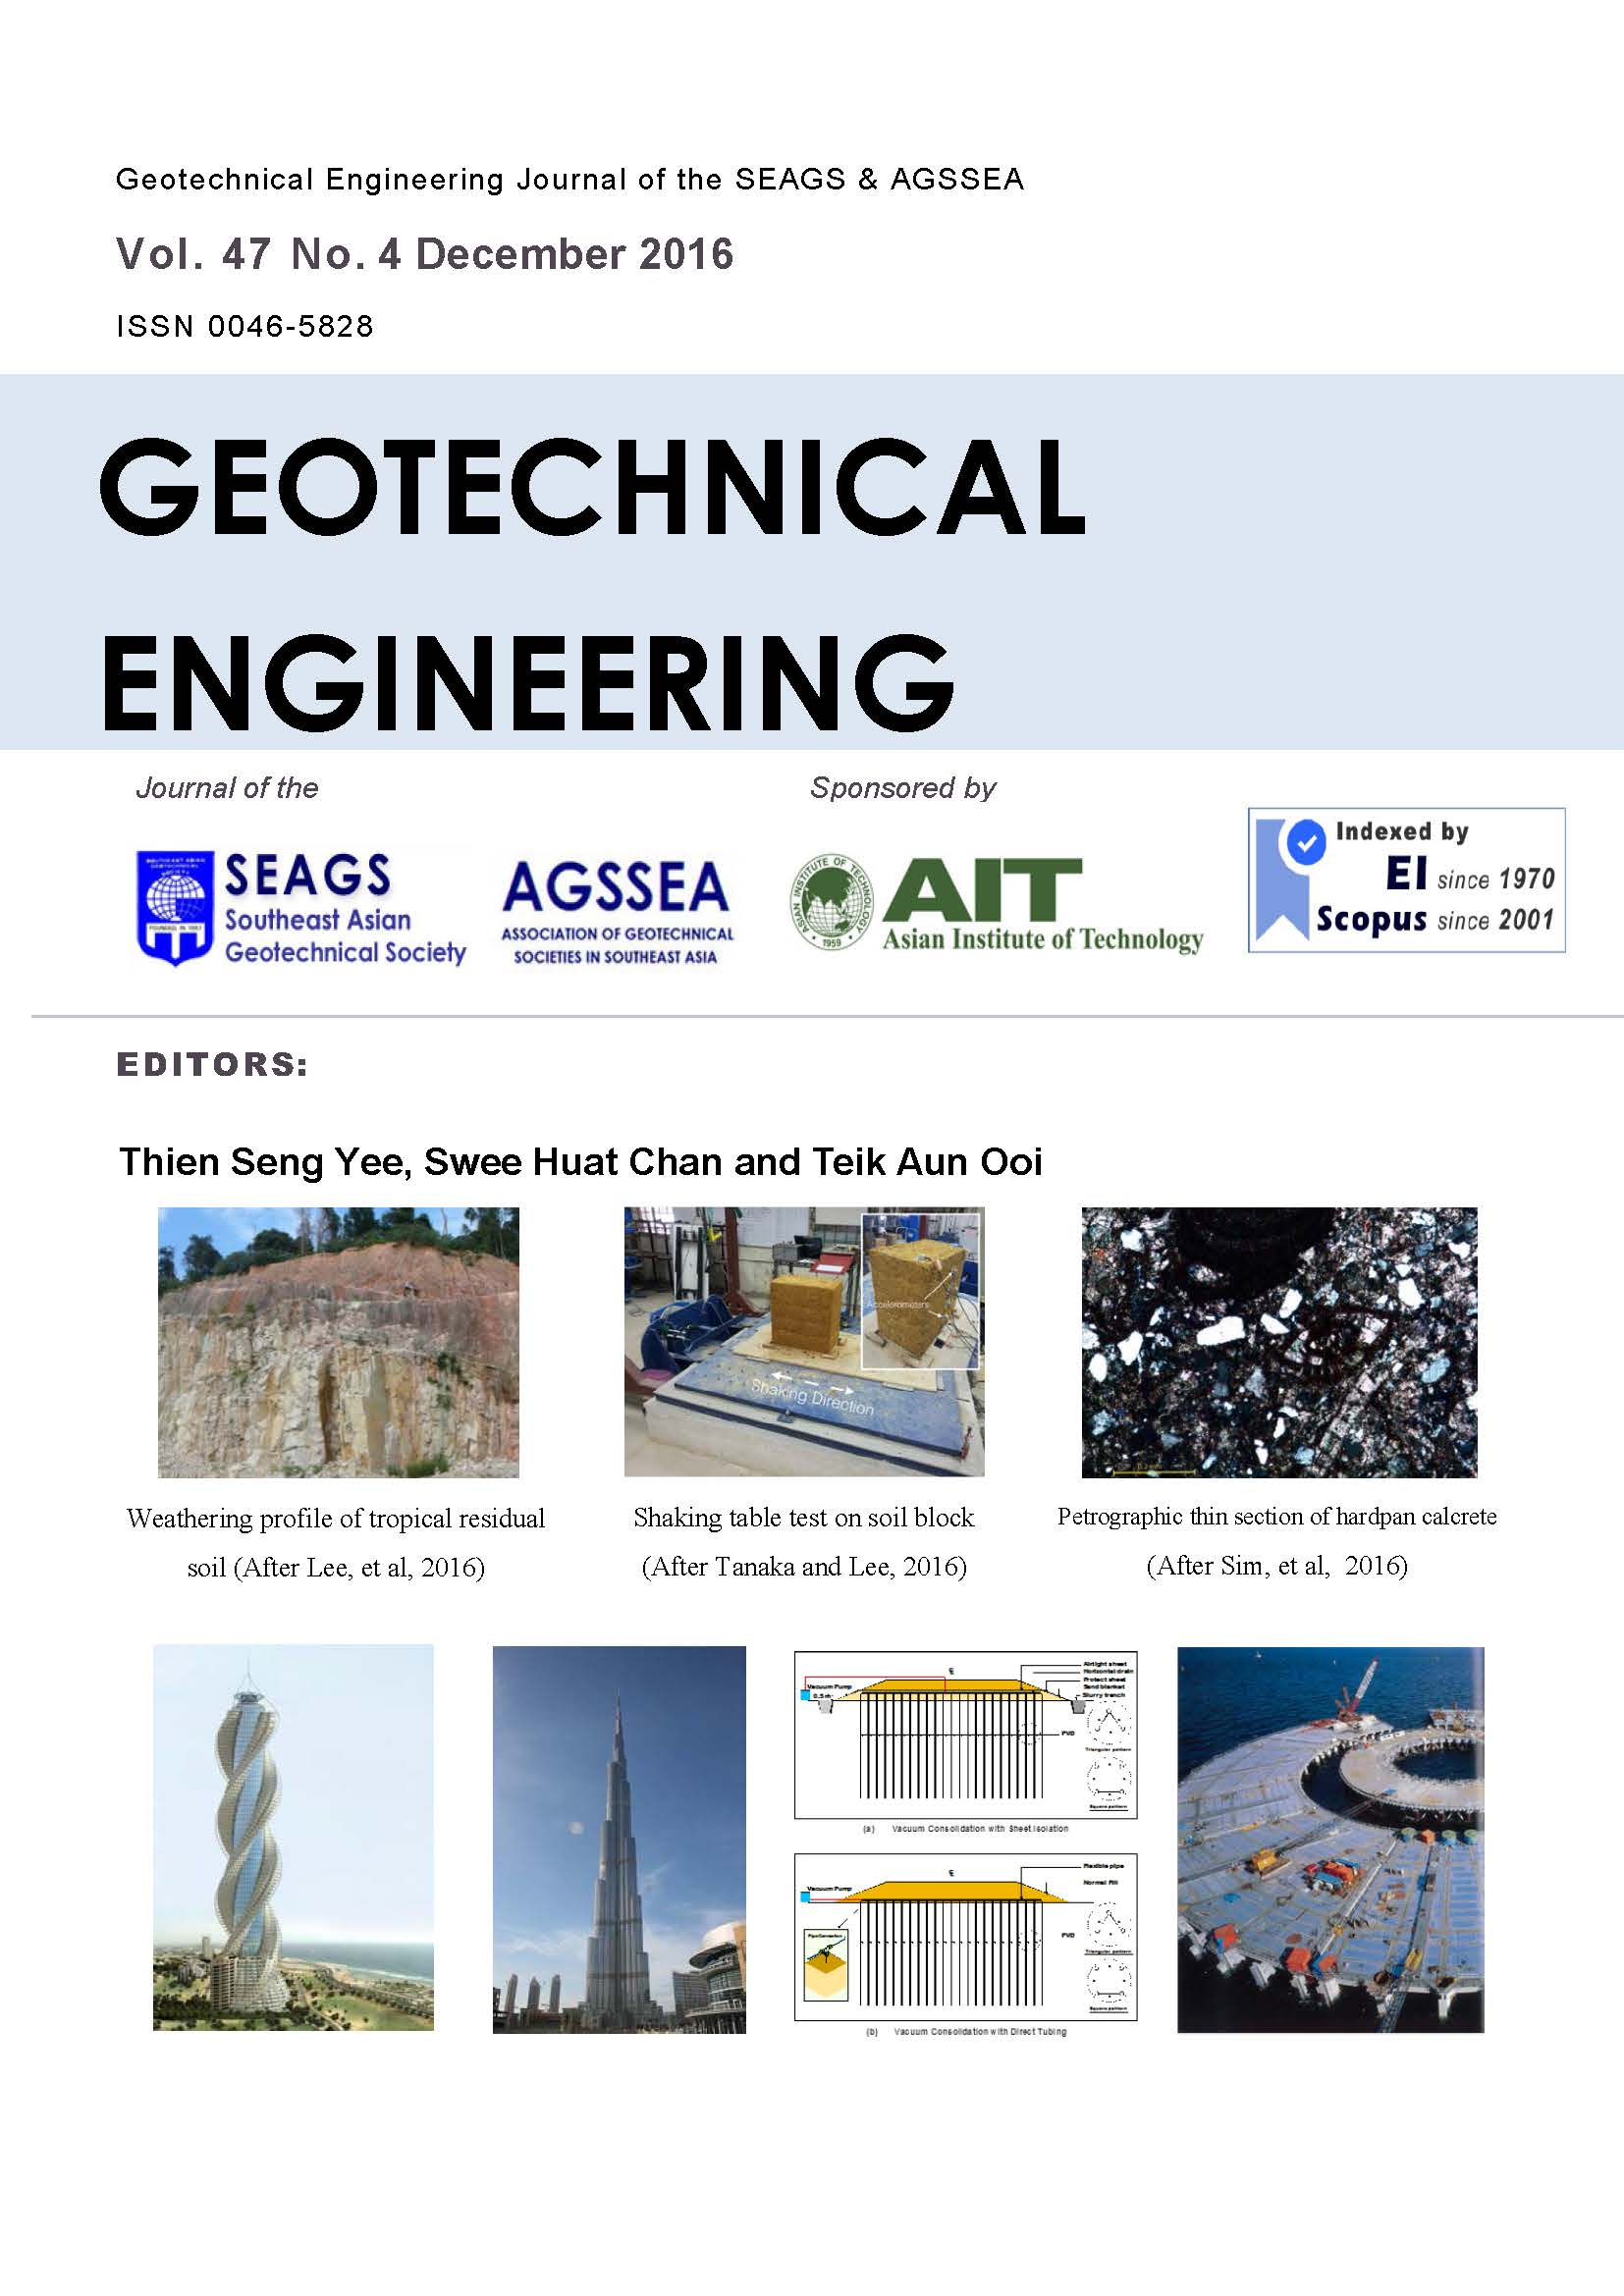 Geotechnical Engineering Journal of the SEAGS & AGSSEA Vol. 47 No. 4 December 2016 ISSN 0046-5828 MALAYSIA SPECIAL ISSSUE Editors: Thien Seng Yee, Swee Huat Chan and Teik Aun Ooi […]